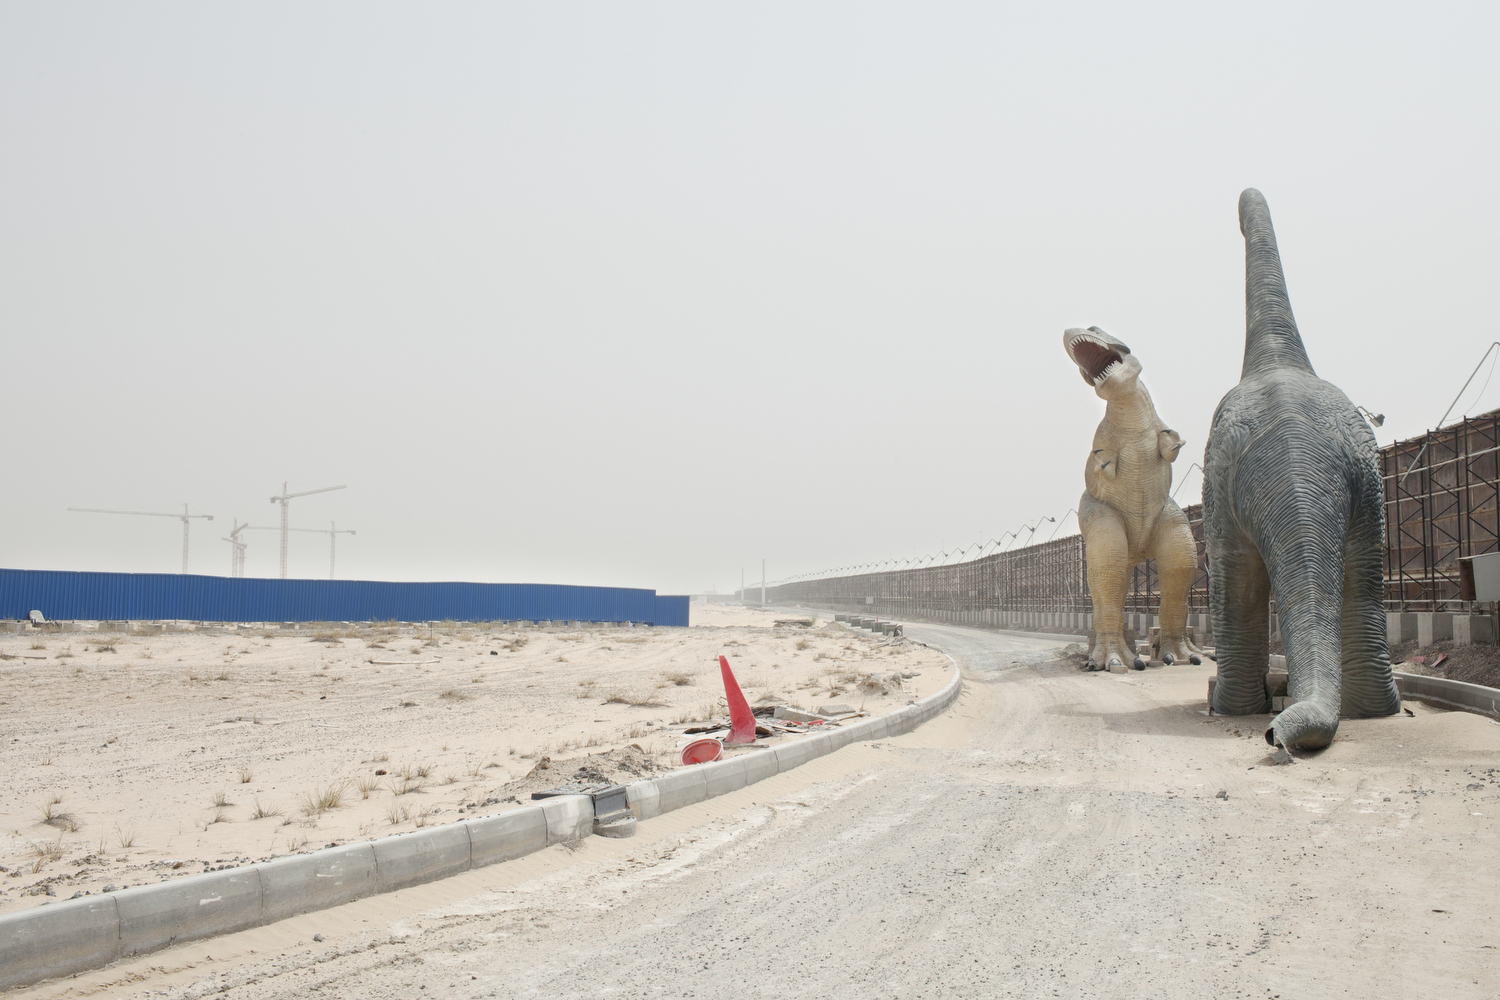 Dinosaur statues at the abandoned project site of the Falcon City of Wonders in Dubai.